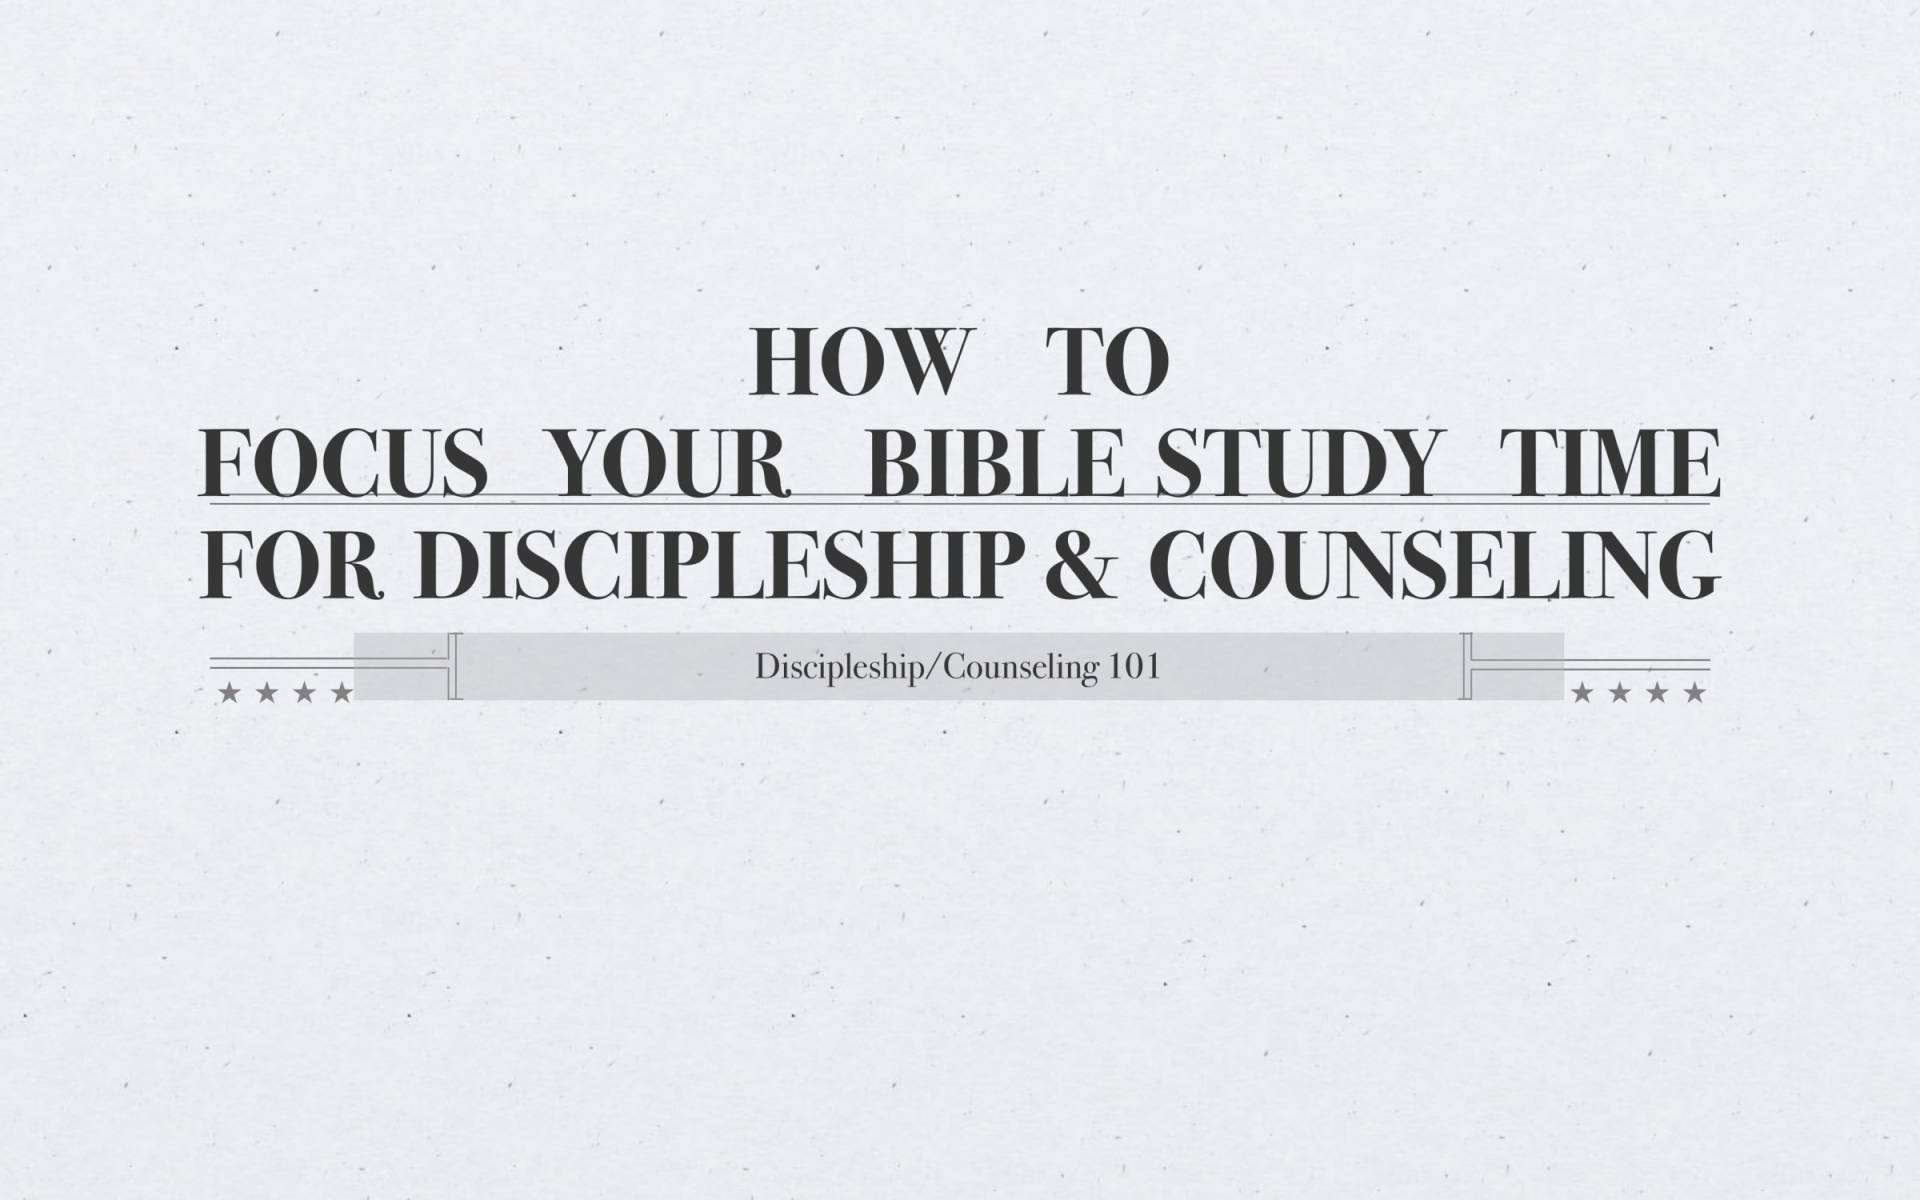 BC&D-04 - How To Focus Your Bible Study Time For Discipleship & Counseling-01